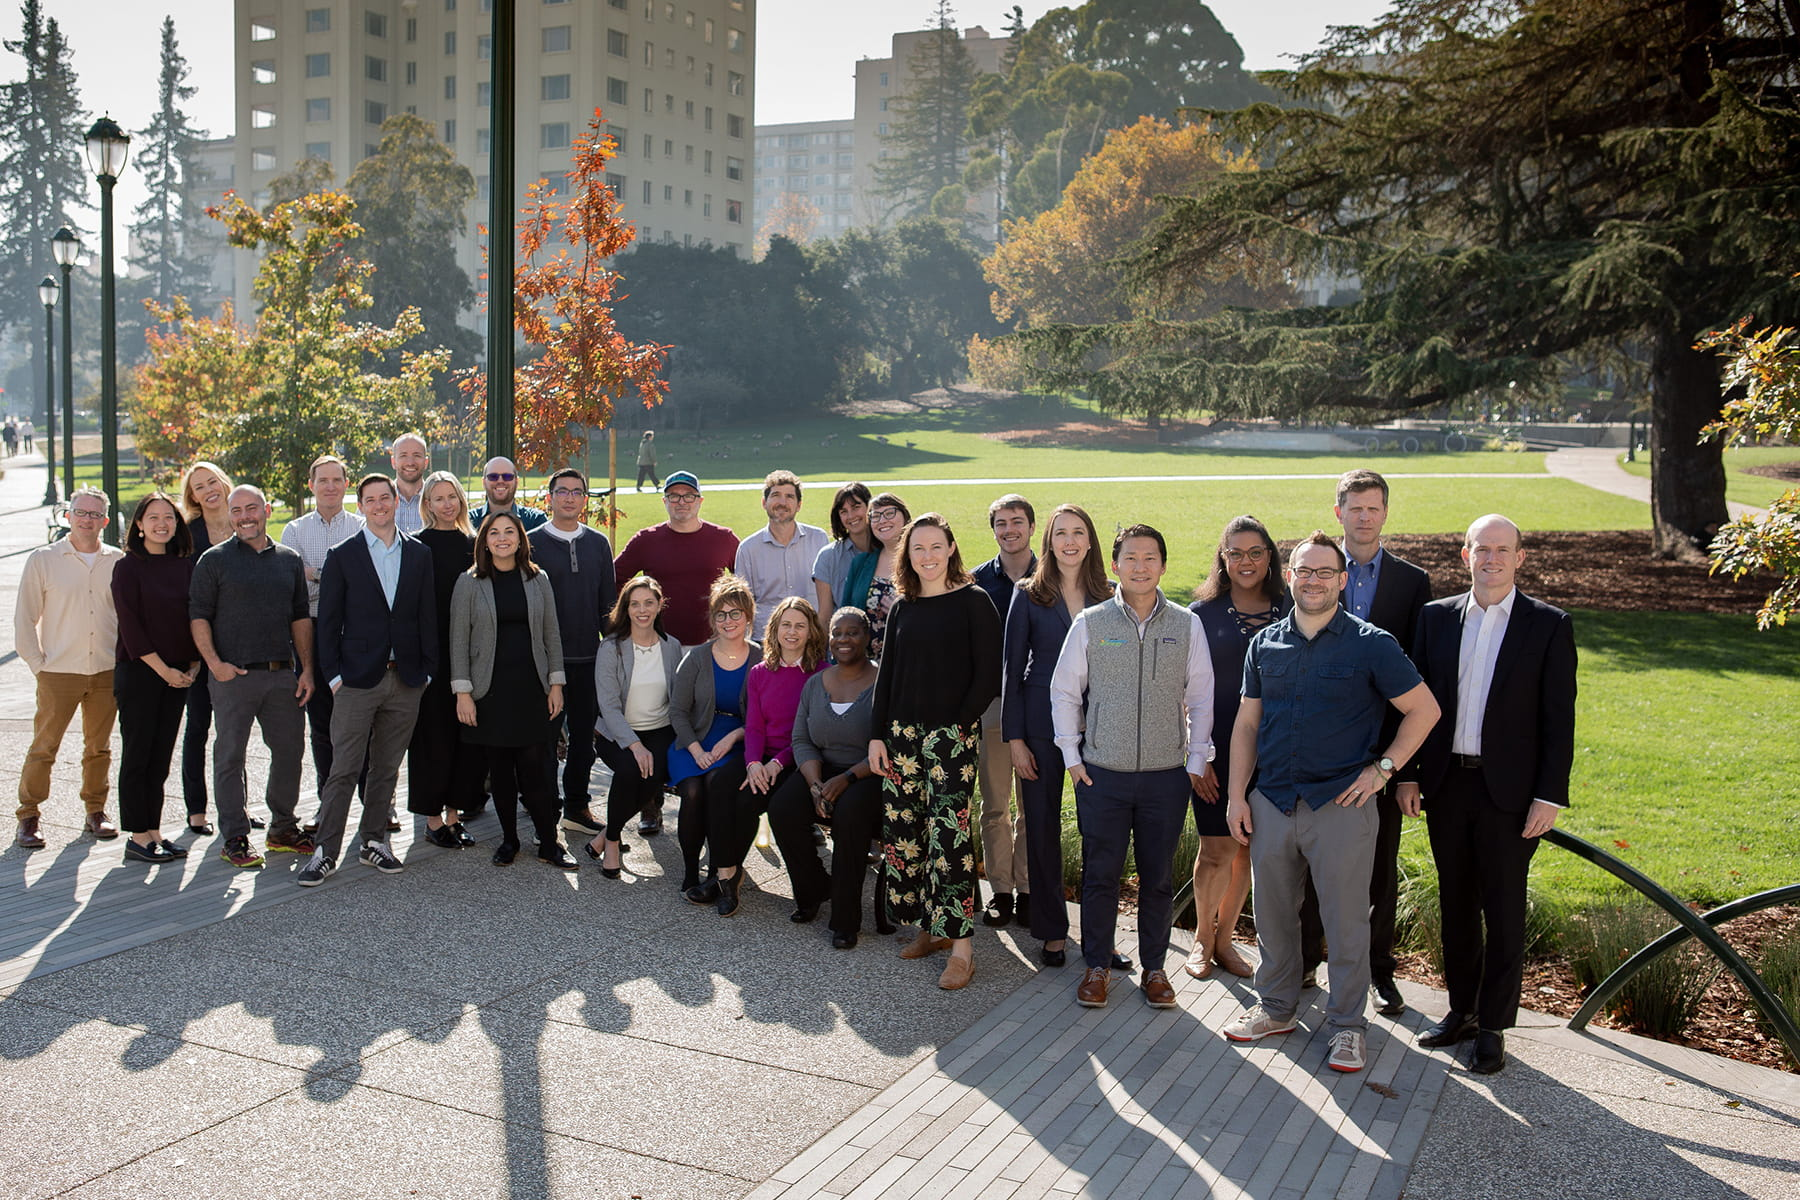 EBCE team members standing together in a park